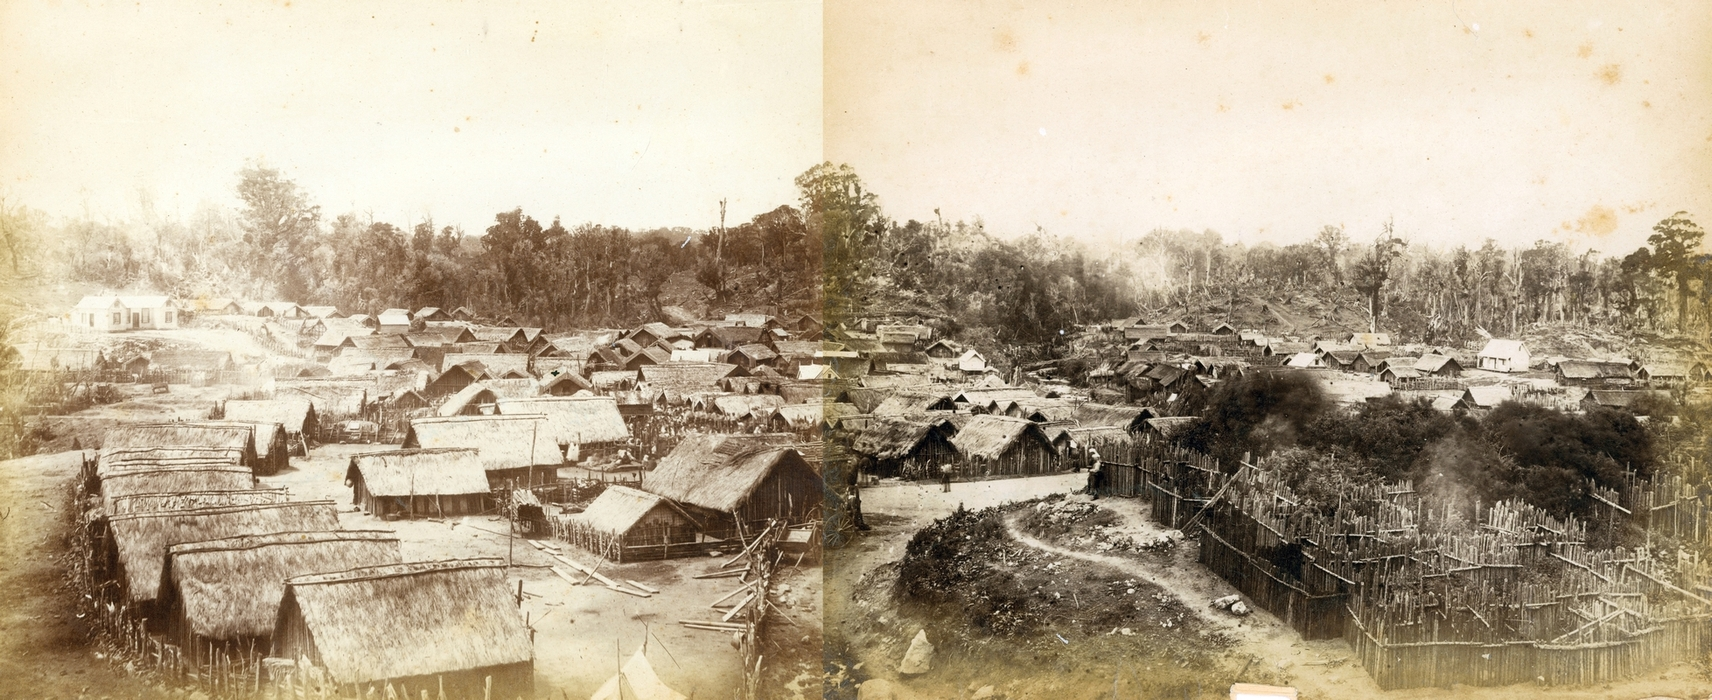 The joining isn't  perfect, but the two photographs were taken at the same time. A homestead on the left, on a raised mound, and about 80  thatched huts, trees in the background and a fenced area in the right foreground, possbily for animals and gardens.